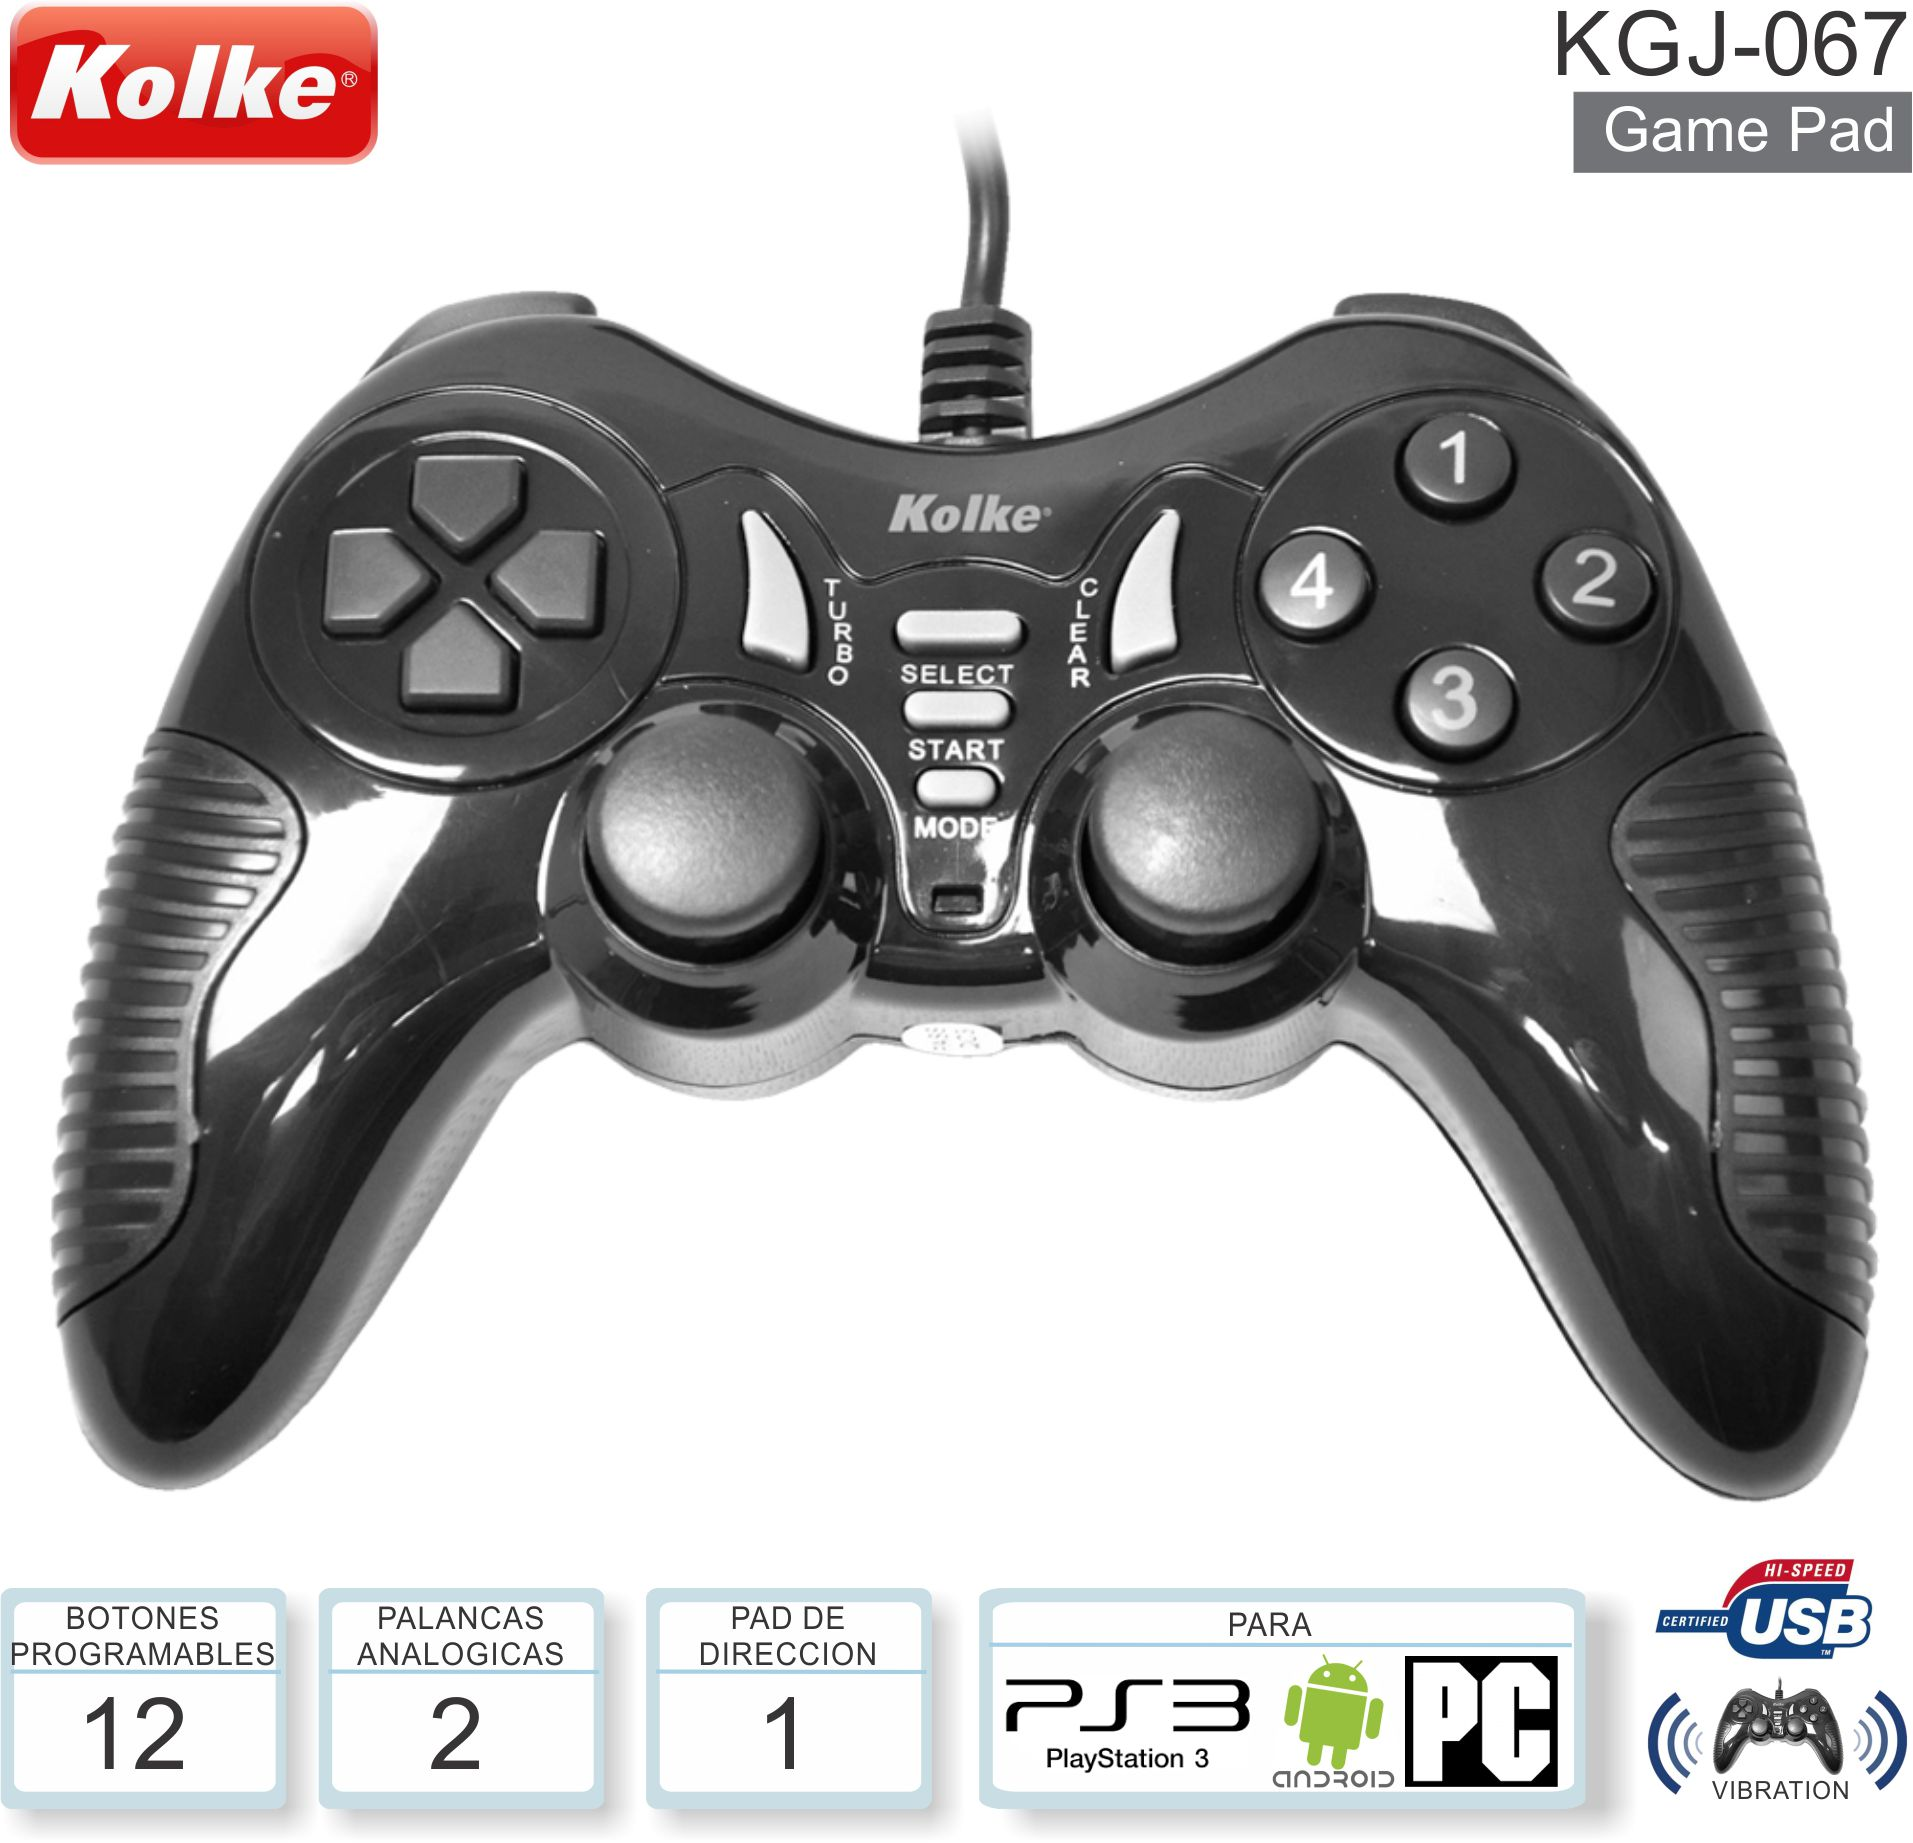 Game Pad KOLKE KGJ-067 PS3 PC USB